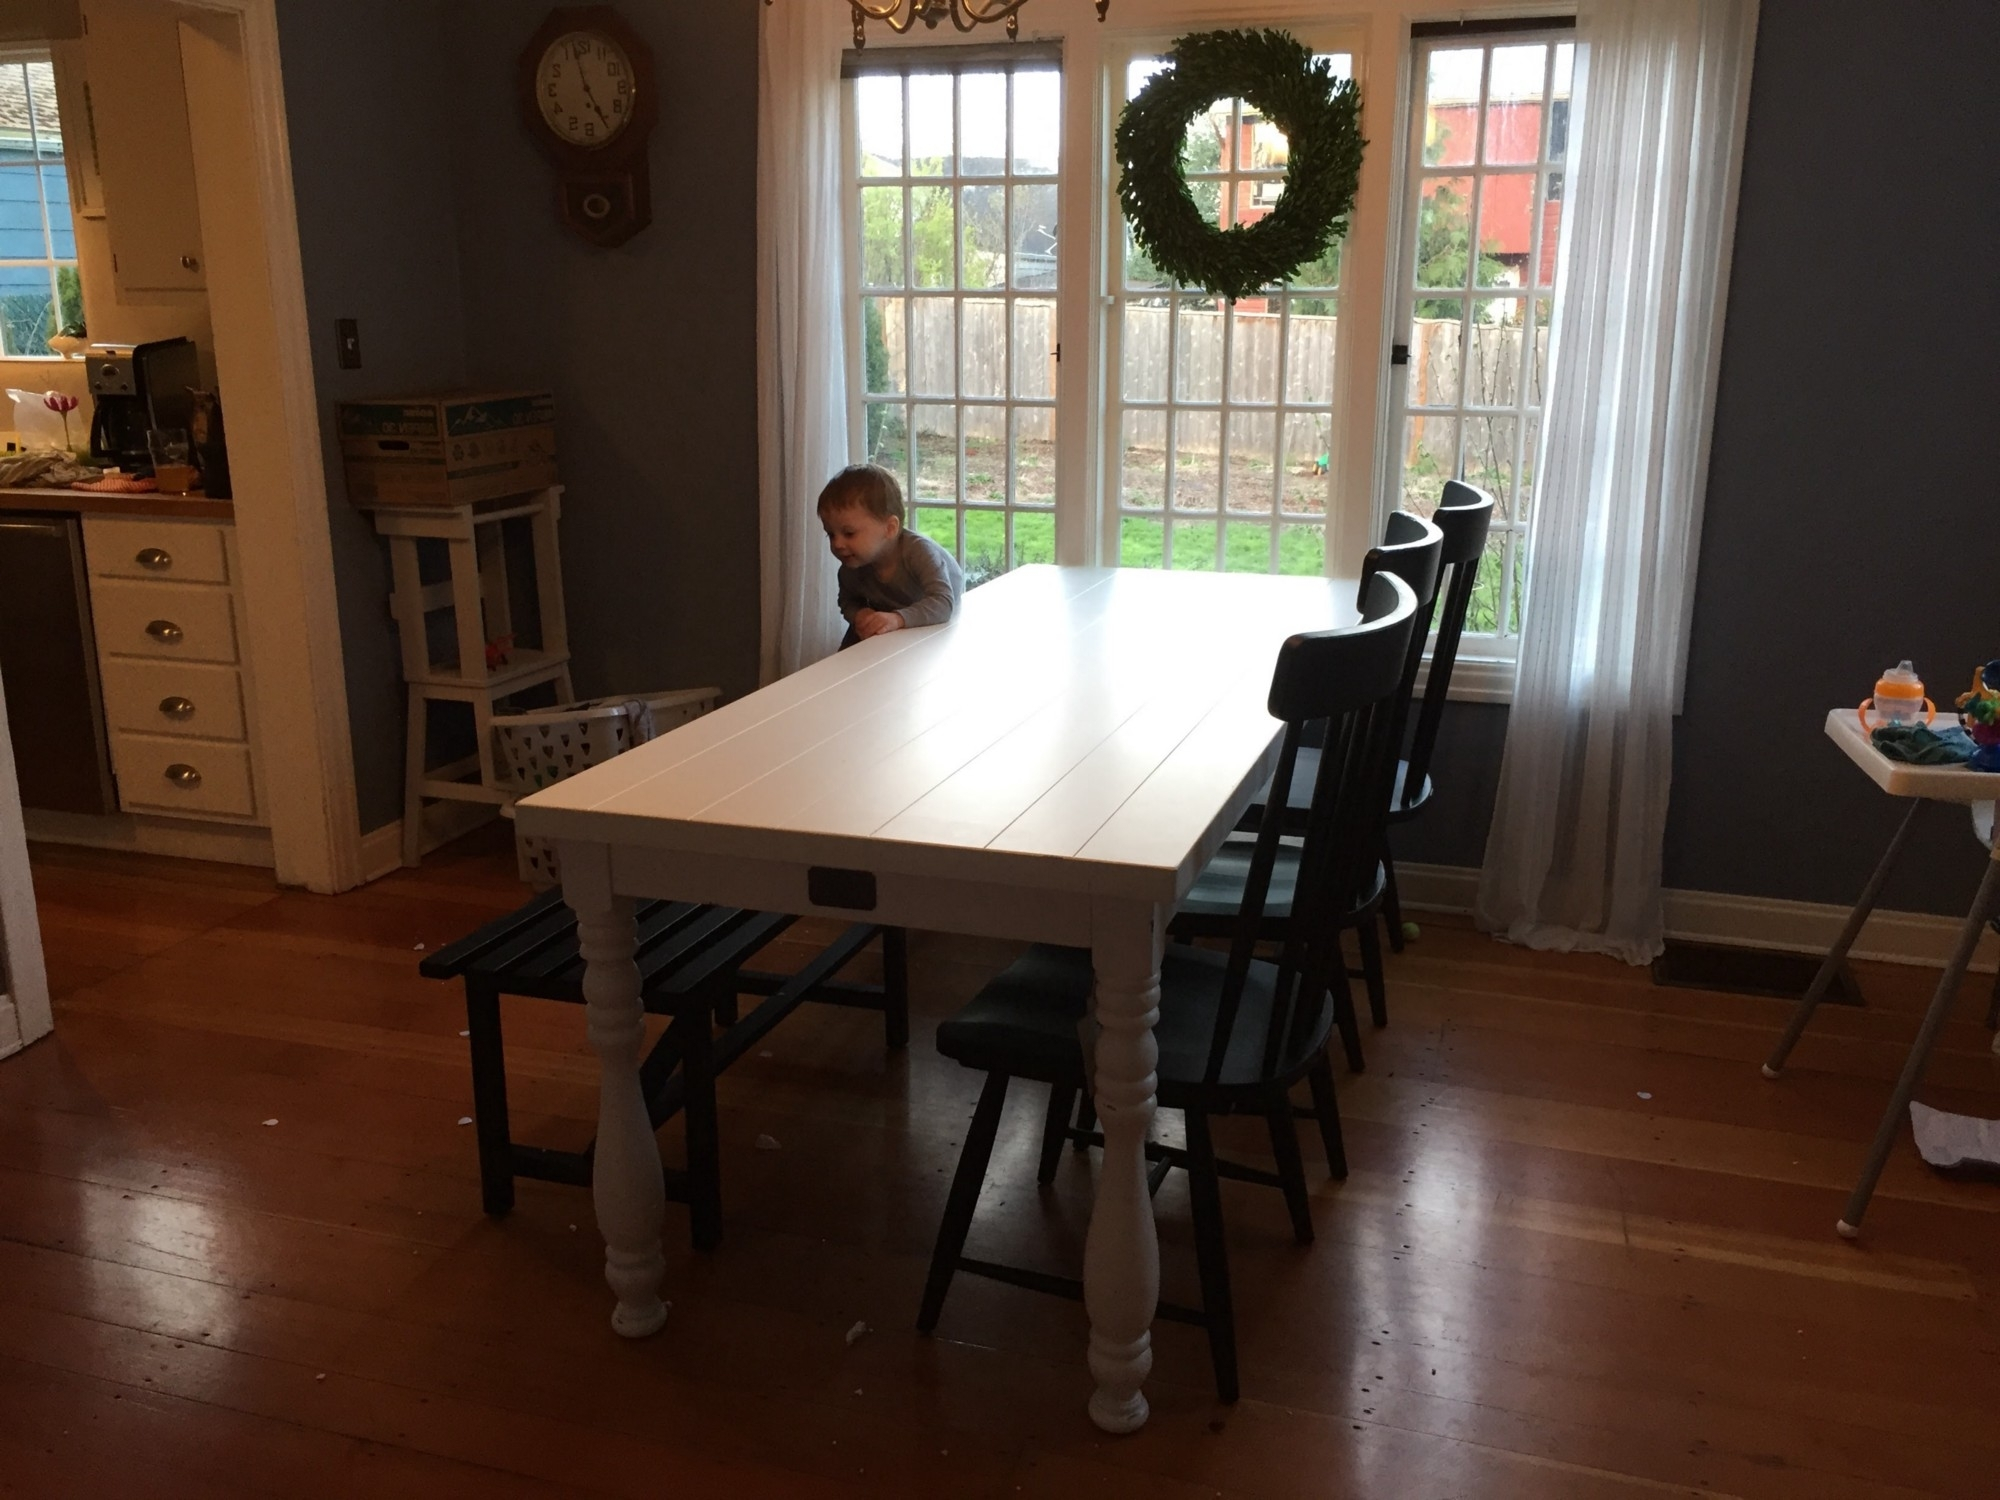 Magnolia Home Sawbuck Dining Tables Inside Favorite Joanna Gaines' Magnolia Home Furniture Line — A Review (View 8 of 25)